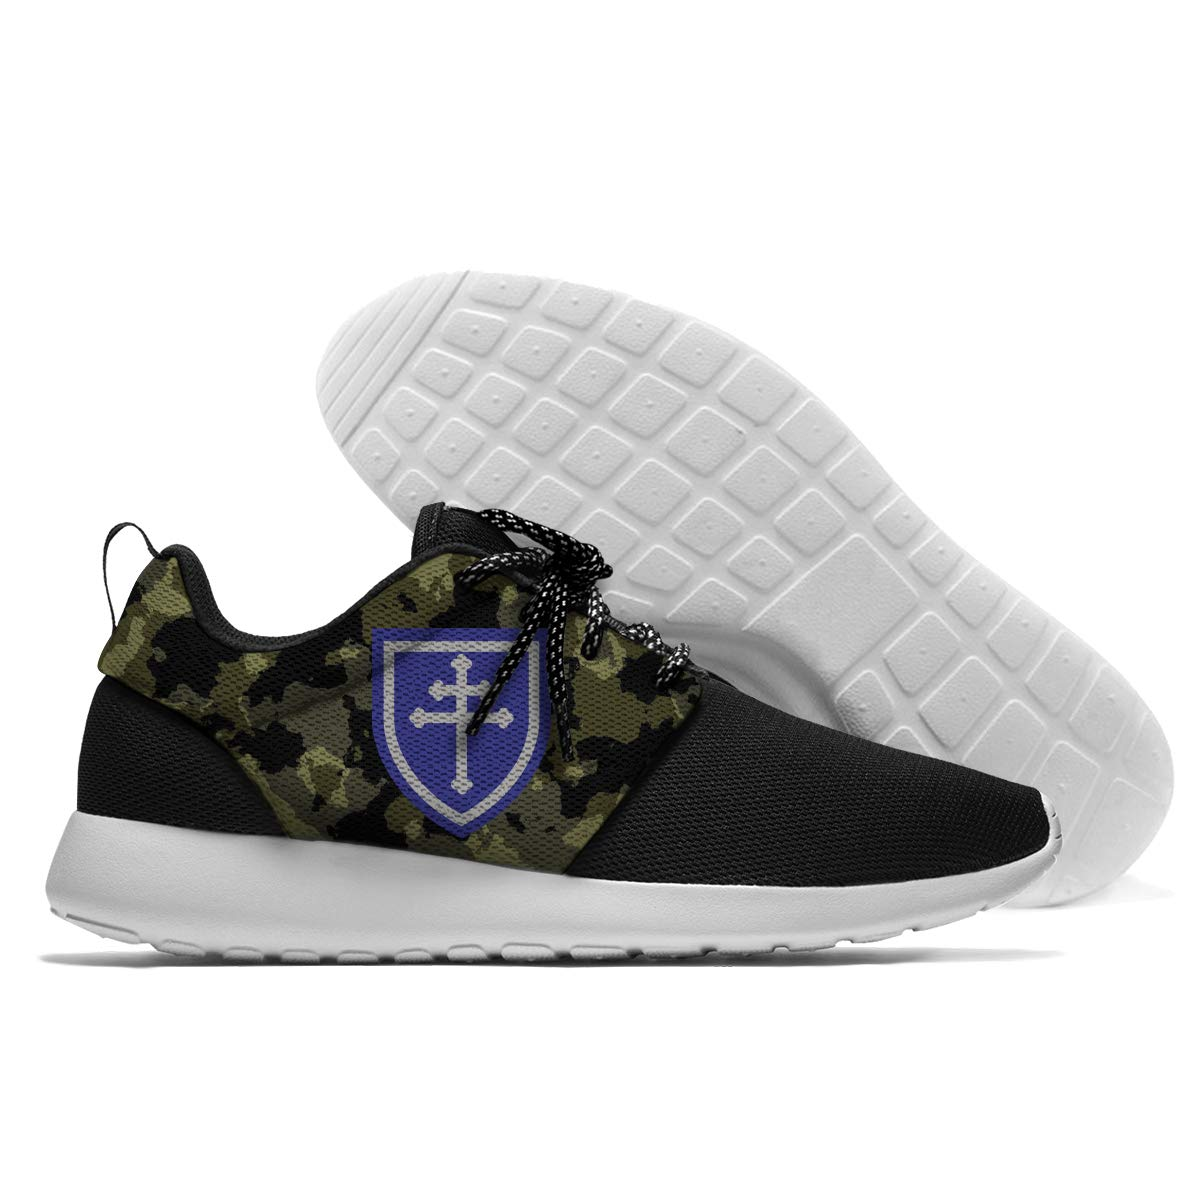 RUNPOOR 79th Infantry Division Running Sneakers Walking Shoes